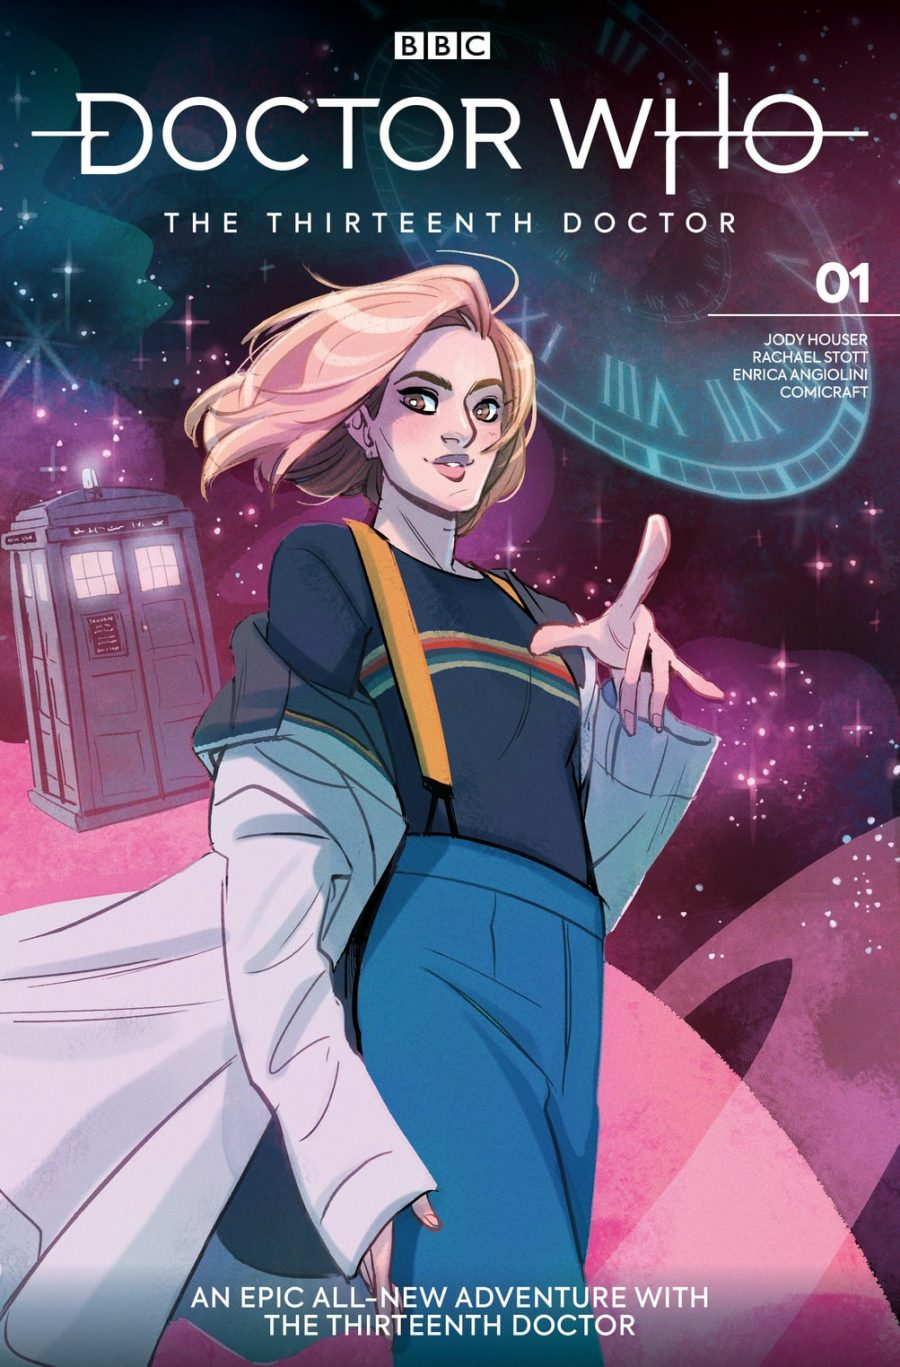 Doctor Who: The Thirteenth Doctor